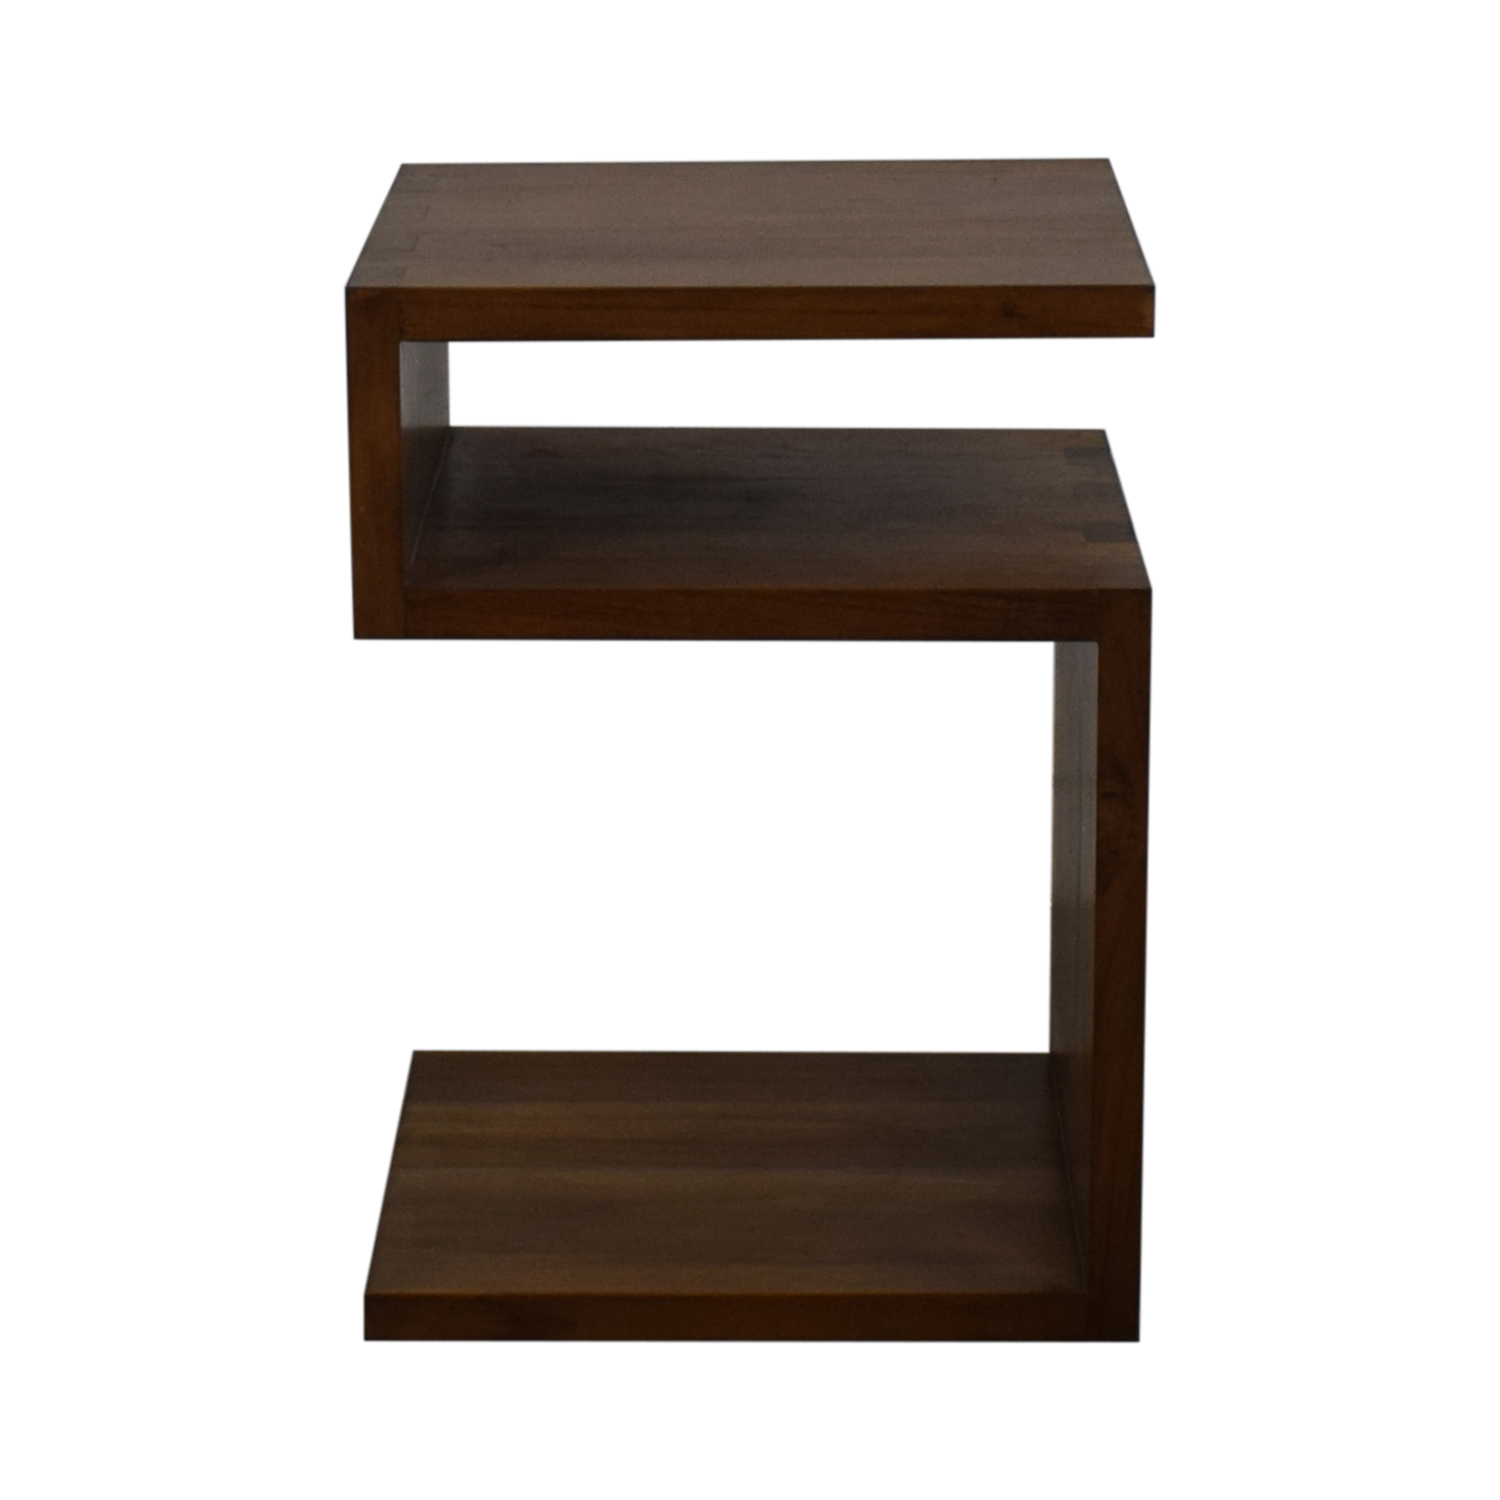 buy Crate & Barrel Crate & Barrel Entu Side Table online